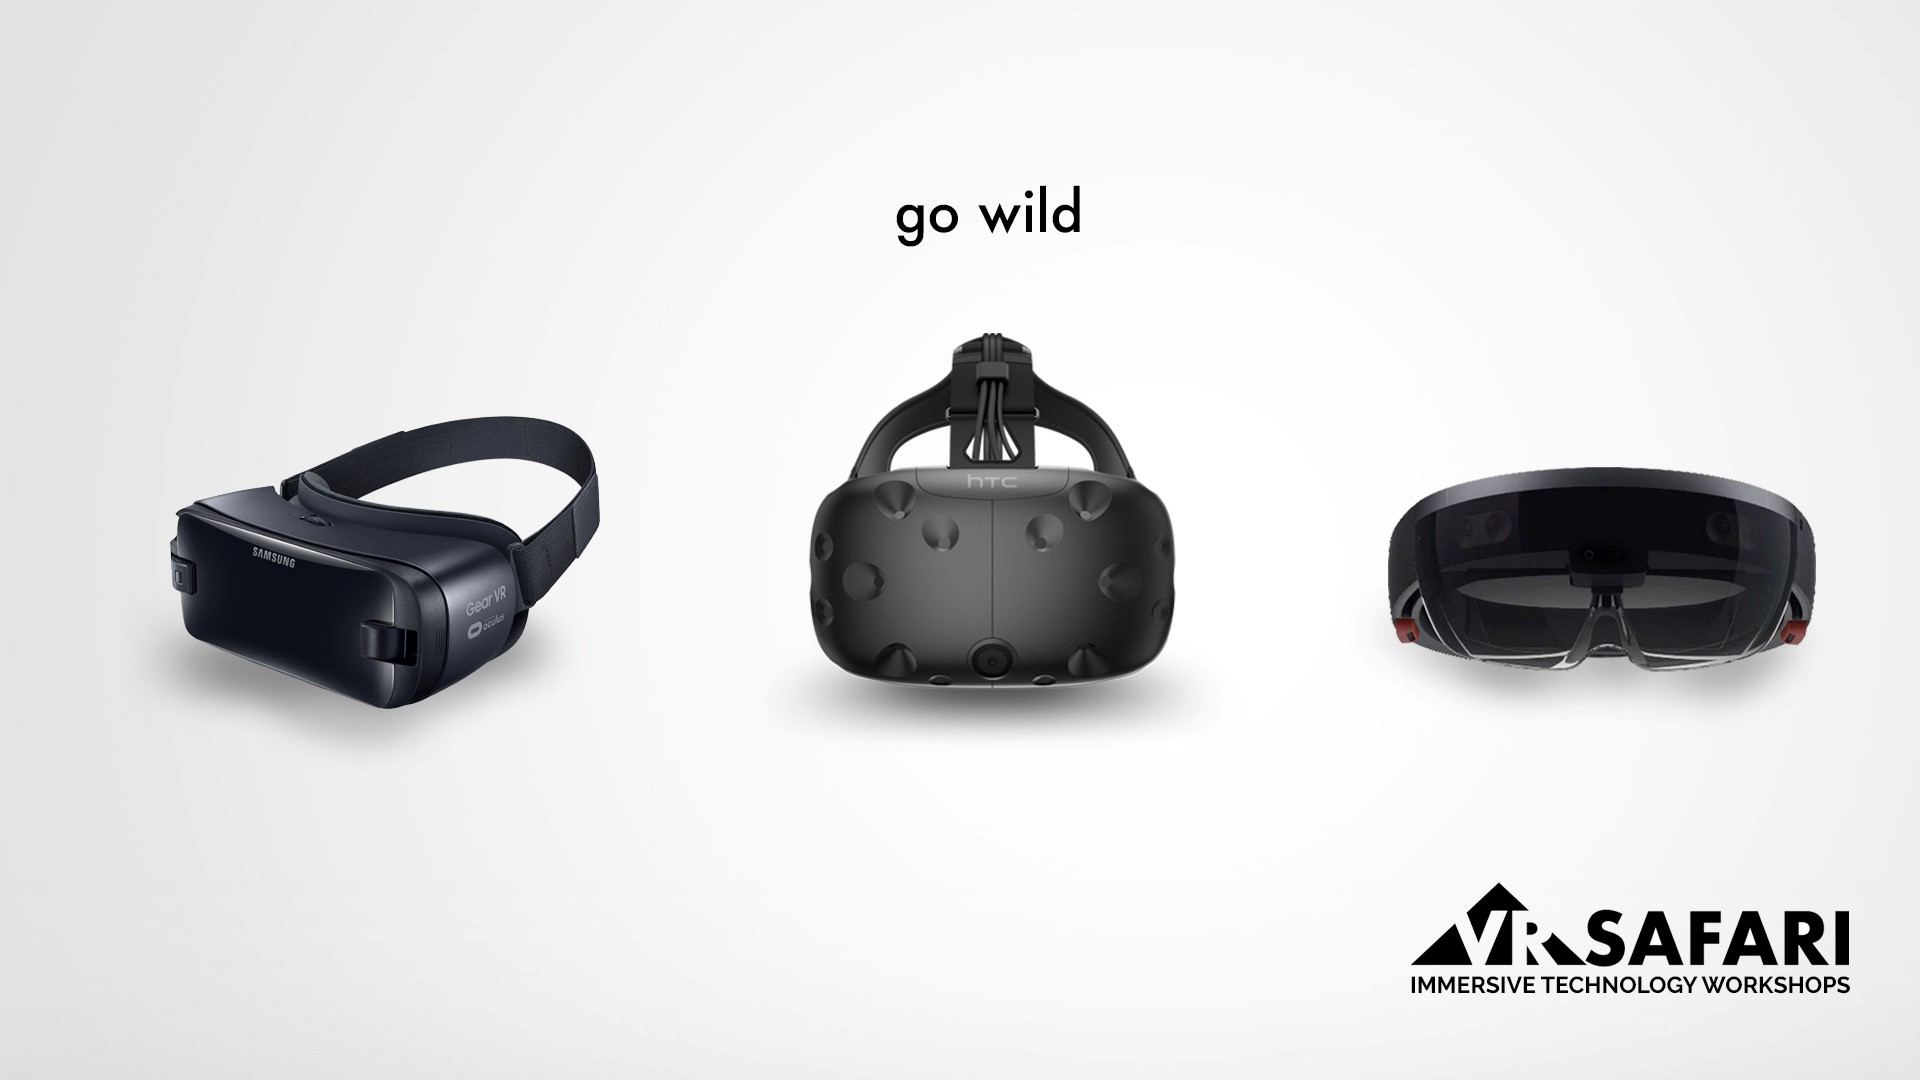 VR Safari Immersive Technology Workshops - Go Wild Header